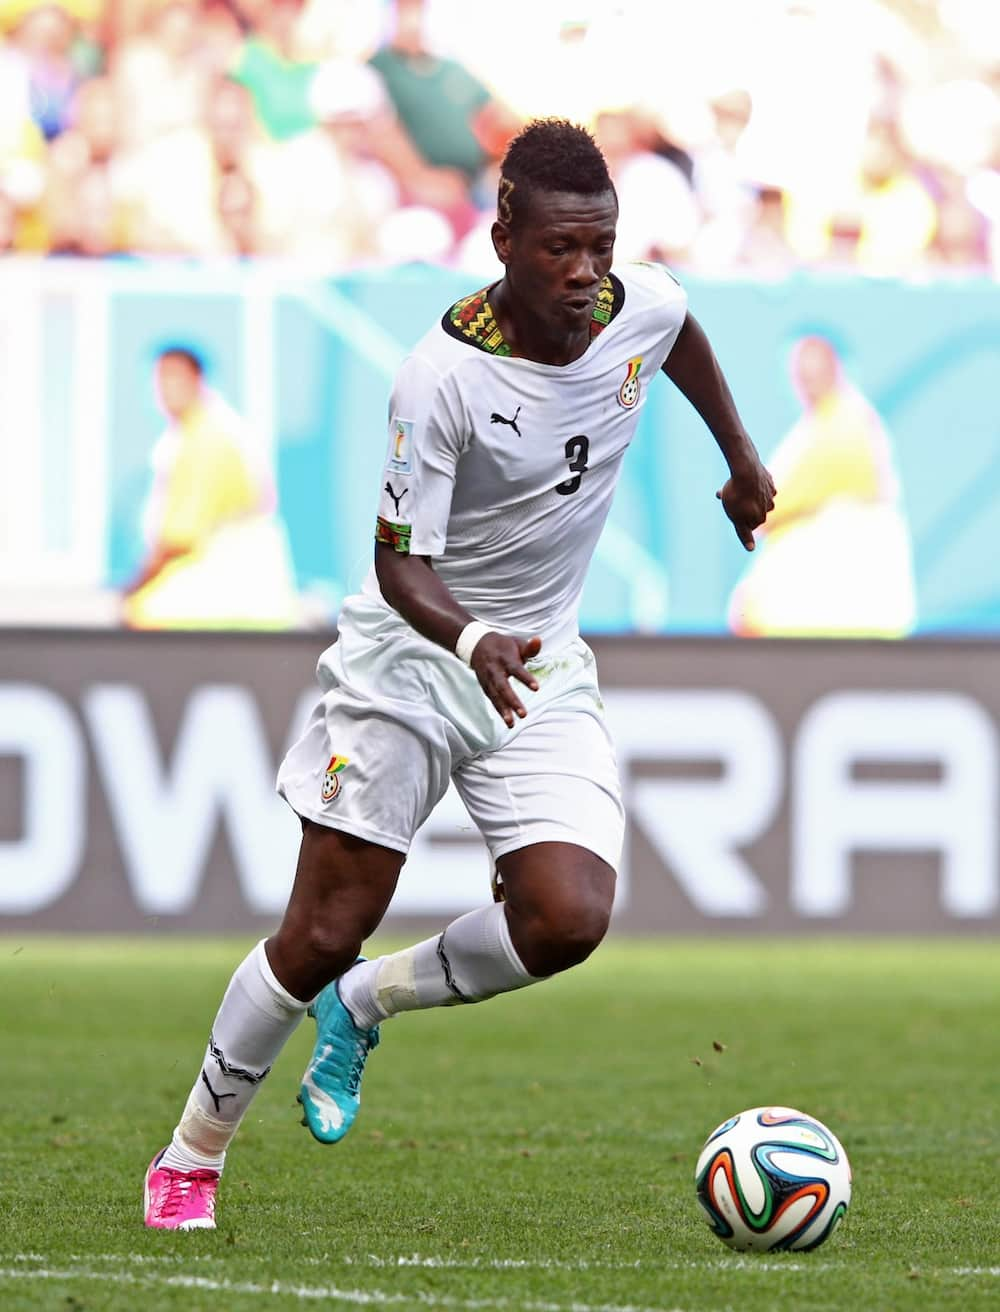 Wadi Degla speaks about Asamoah Gyan's move to the club